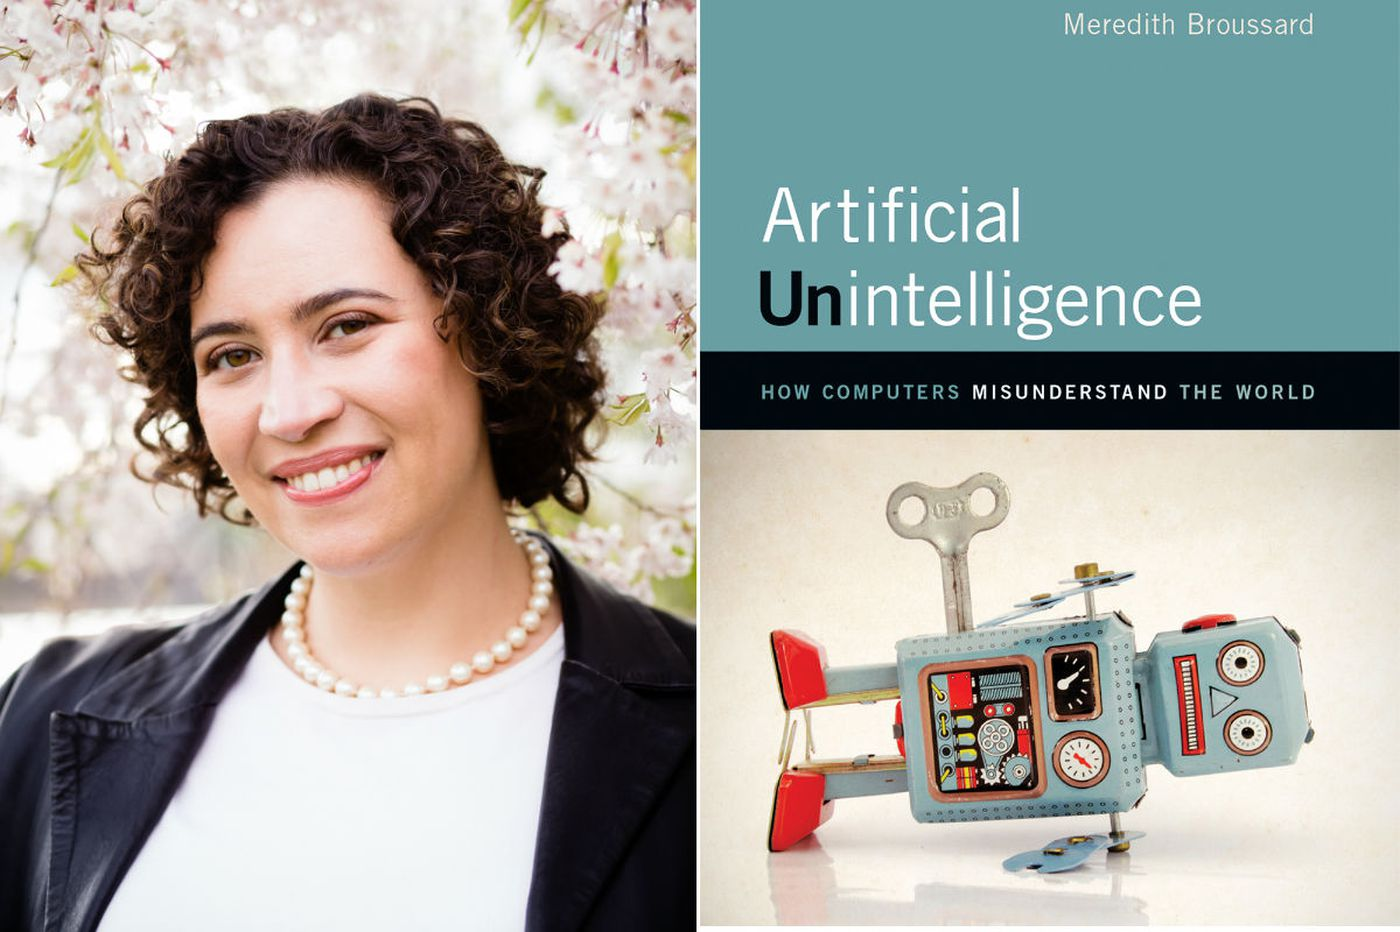 Meredith Broussard's 'Artificial Unintelligence': Against the fetish of the machine